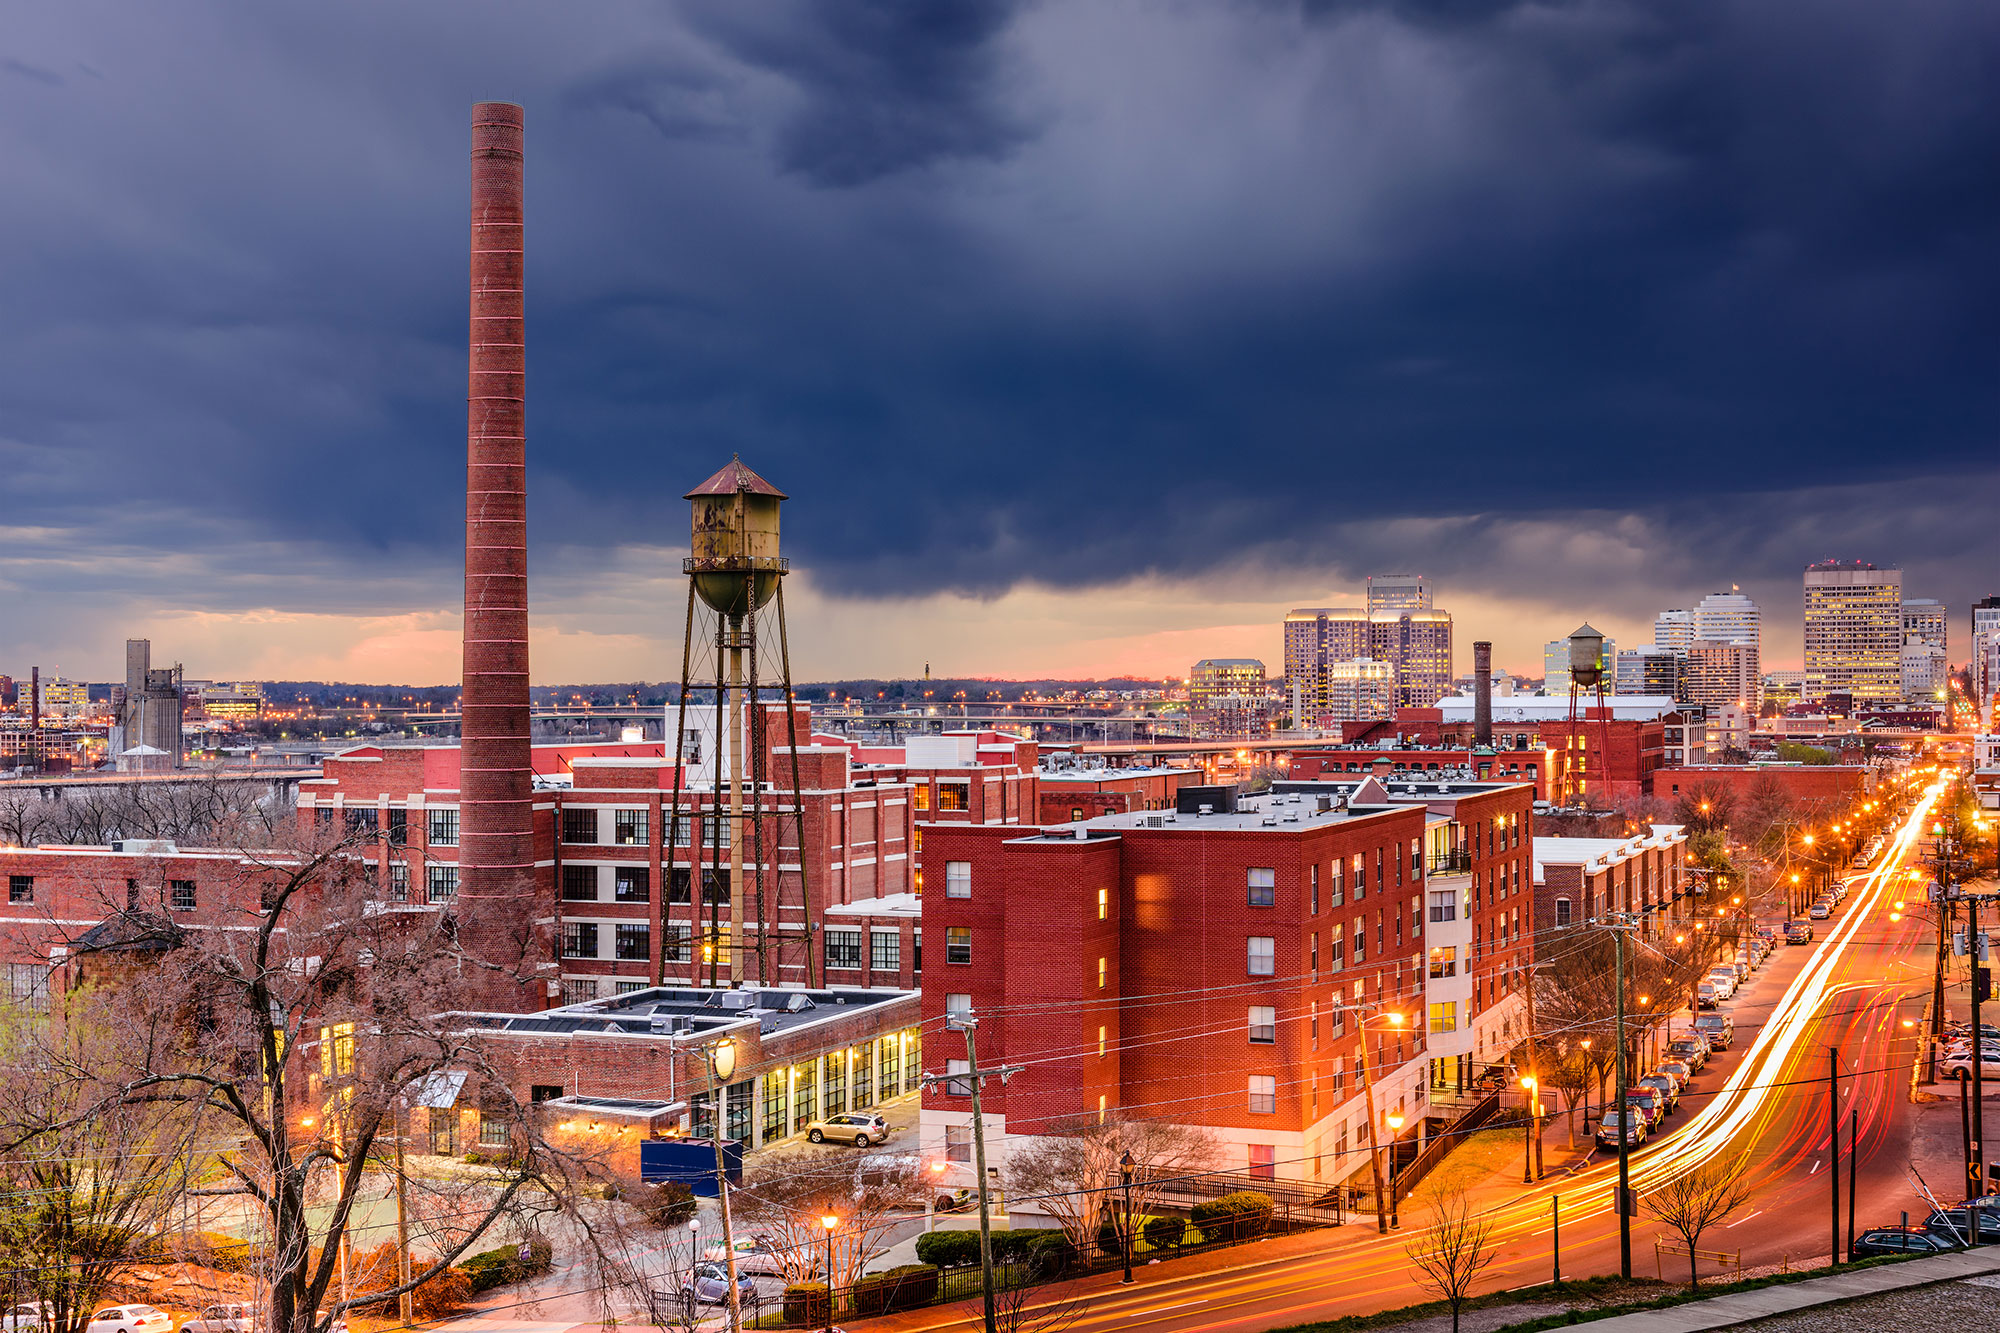 6. Richmond, Virginia